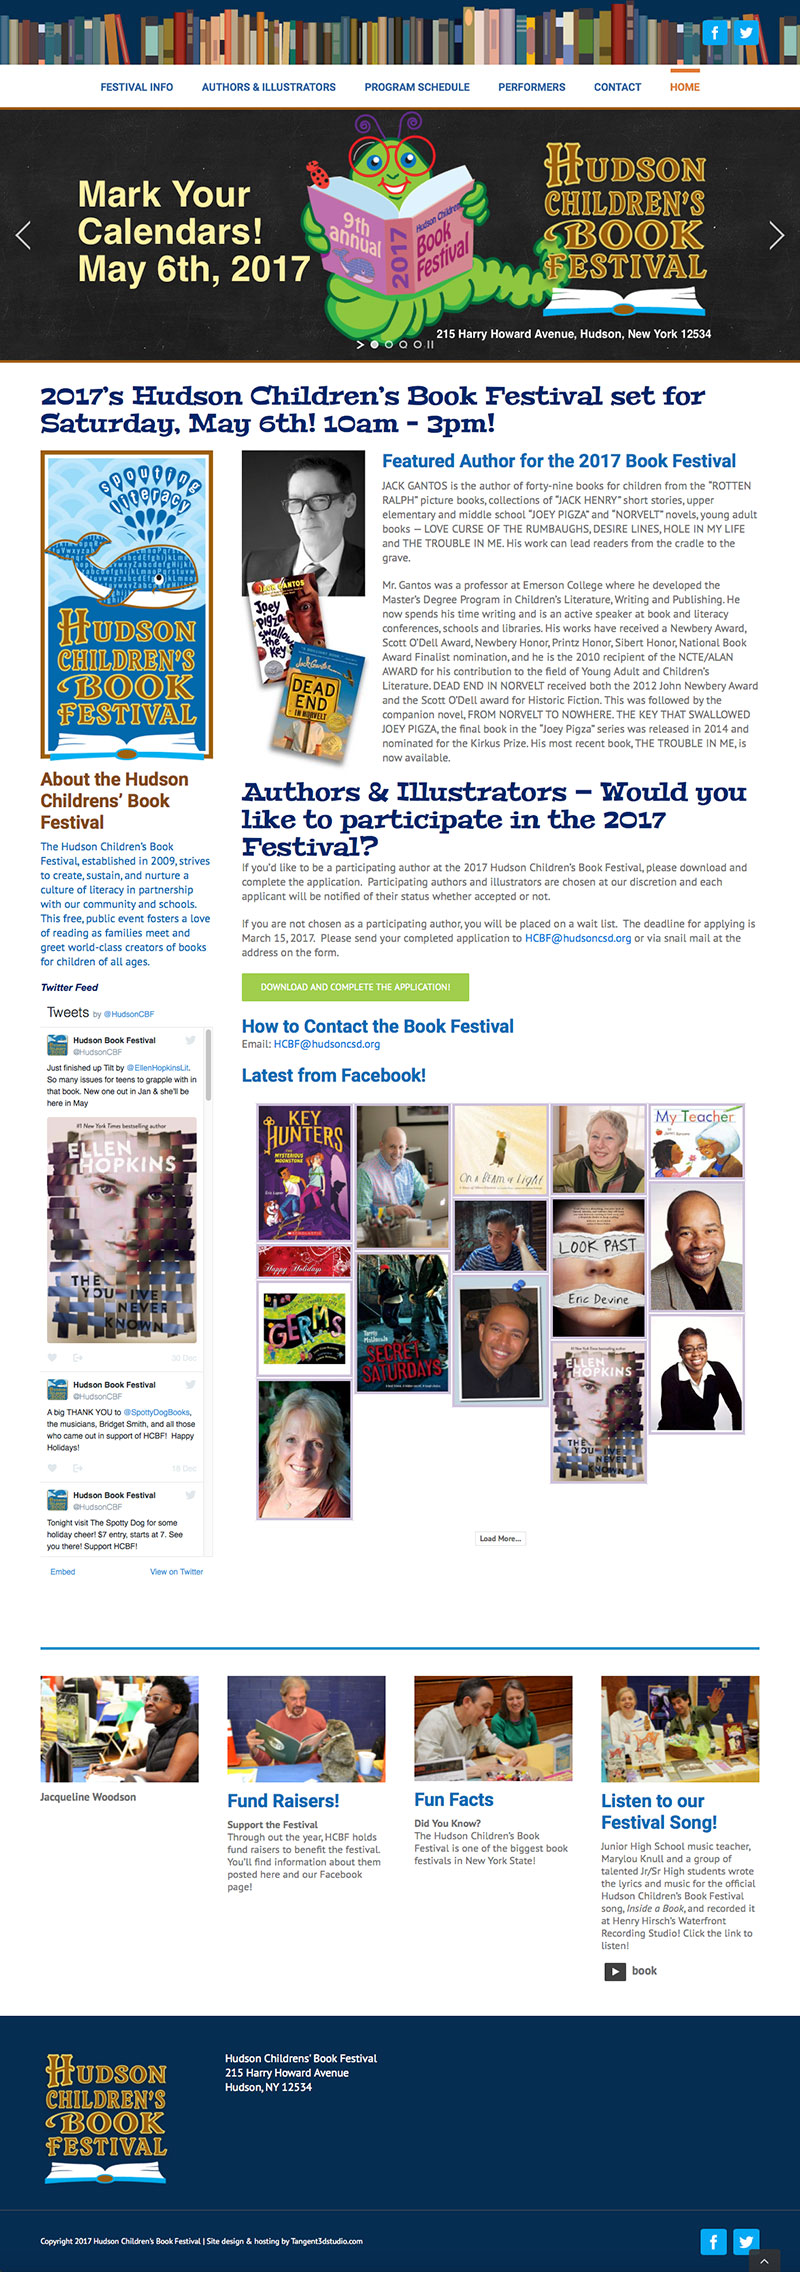 Tangent web services designed, programmed and provides wordpress support for the Hudson Childrens Book Festival